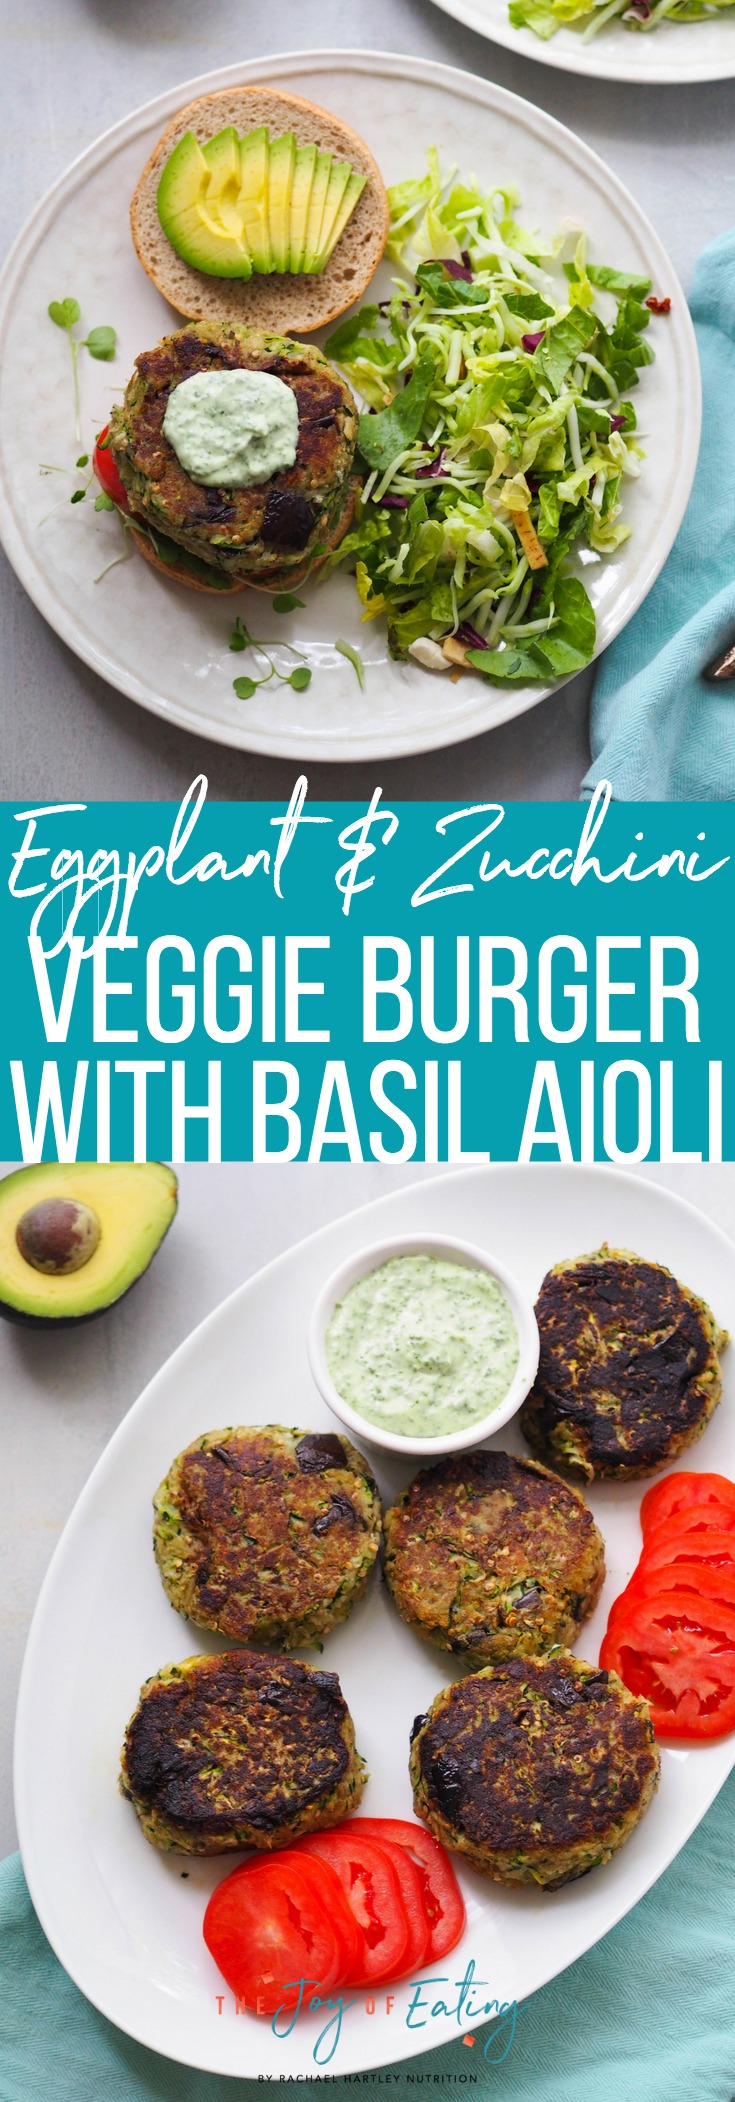 This eggplant and zucchini veggie burger with basil aioli is the perfect veggie burger for summer! #veggieburger #eggplant #zucchini #vegetarian